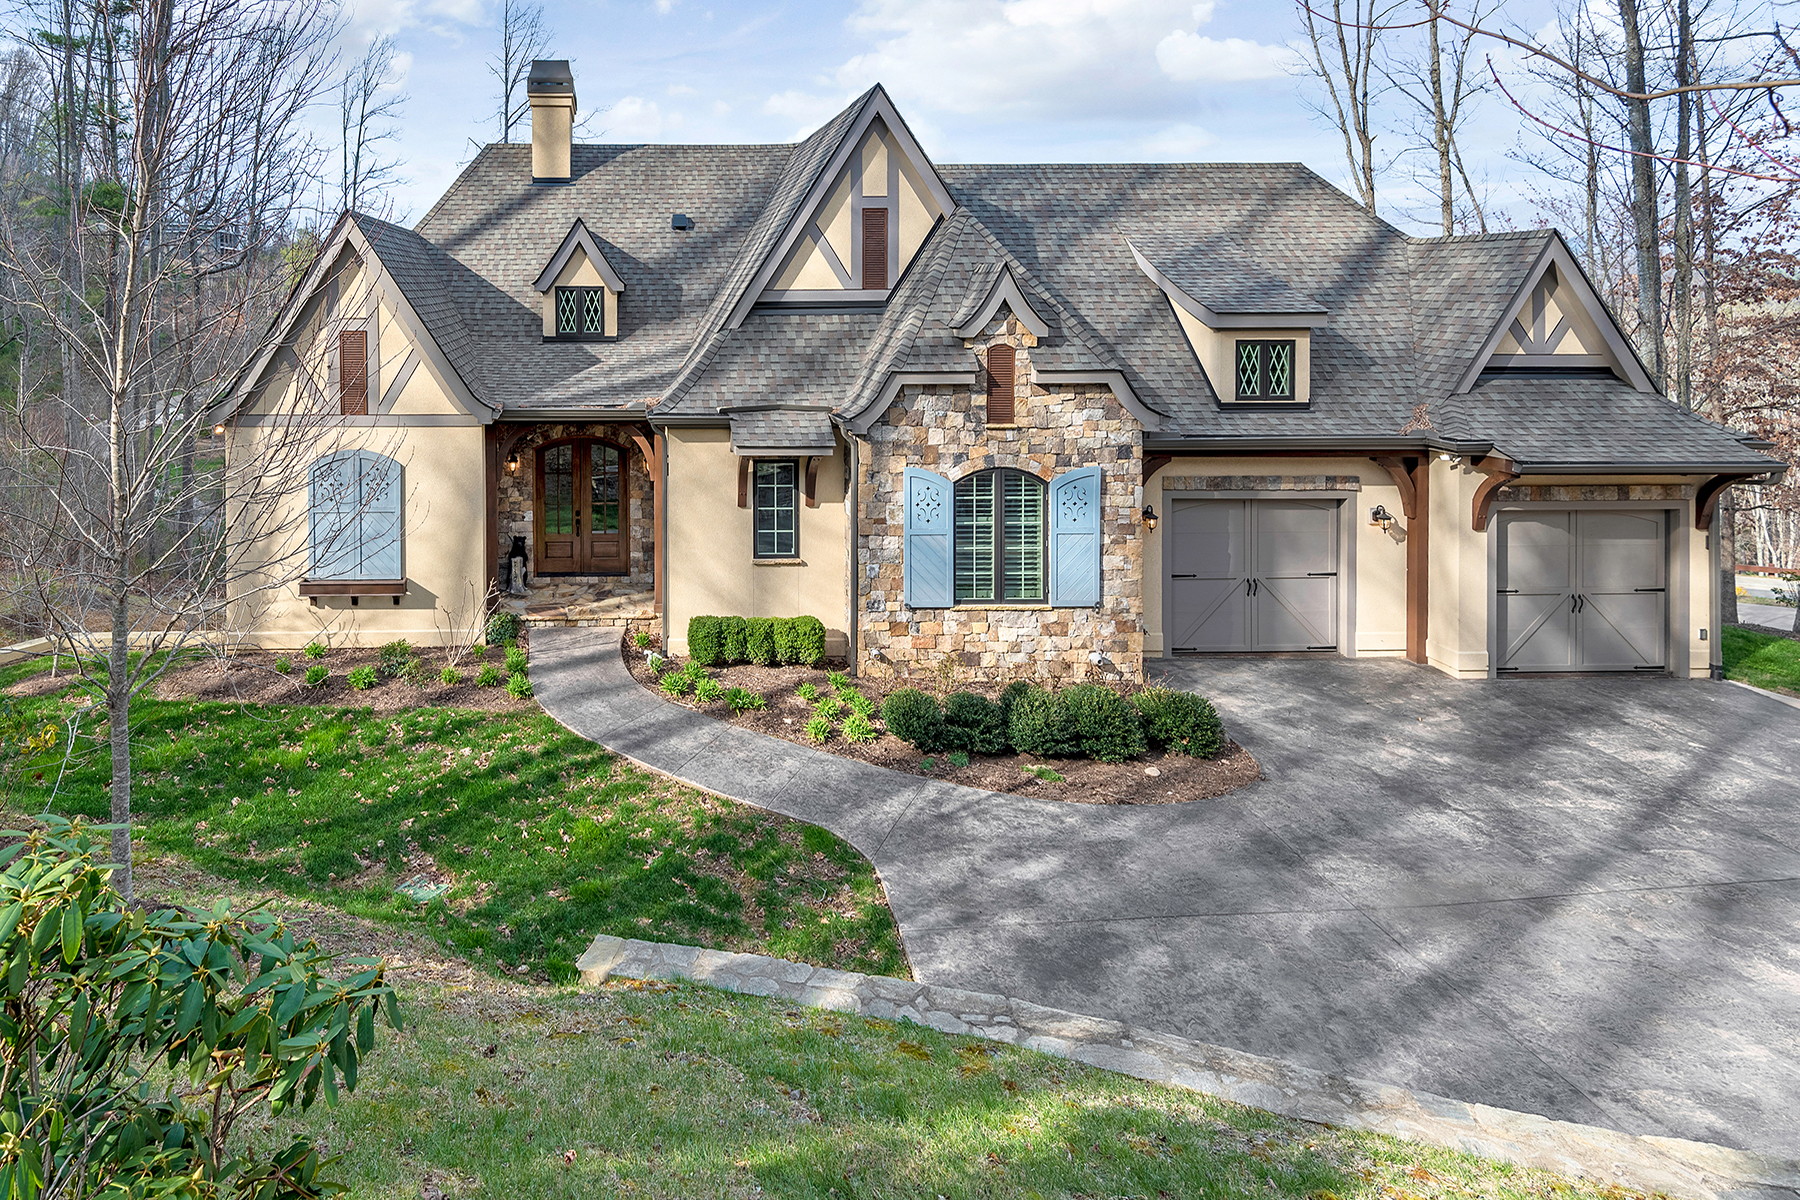 Single Family Home for Sale at MASTERFULLY CRAFTED GREEN BUILT RESIDENCE 54 Grove Cove Dr, Asheville, North Carolina 28804 United States